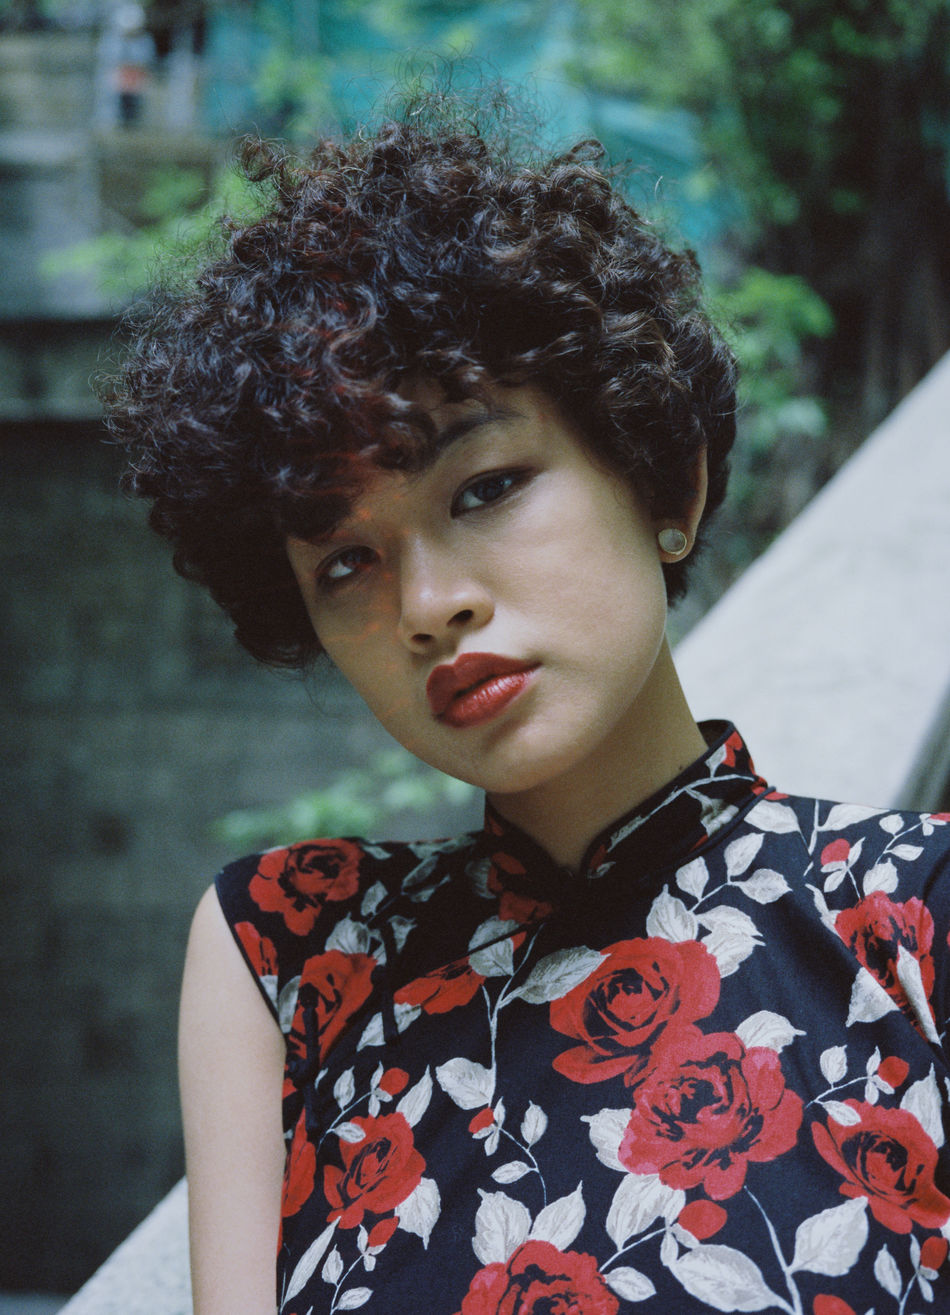 Adult Adults Only Beautiful Woman Beauty Cheongsam Close-up Curly Hair Day Fashion Focus On Foreground One Person One Woman Only One Young Woman Only Only Women Outdoors People Portrait Young Adult